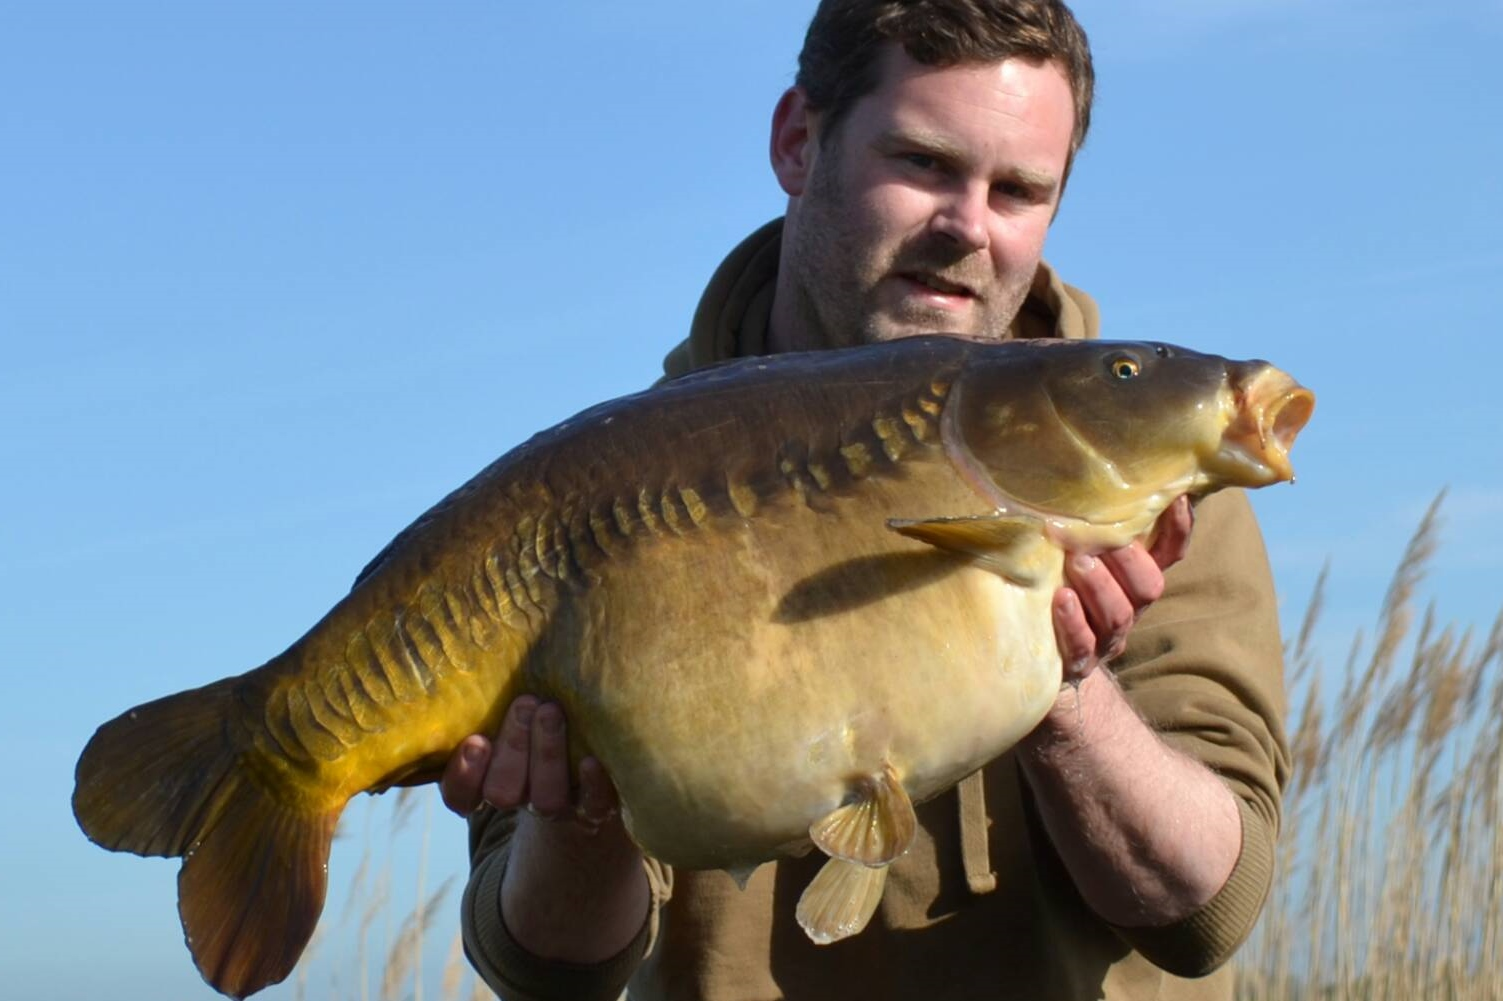 This was soon followed by this chunky 26lb linear